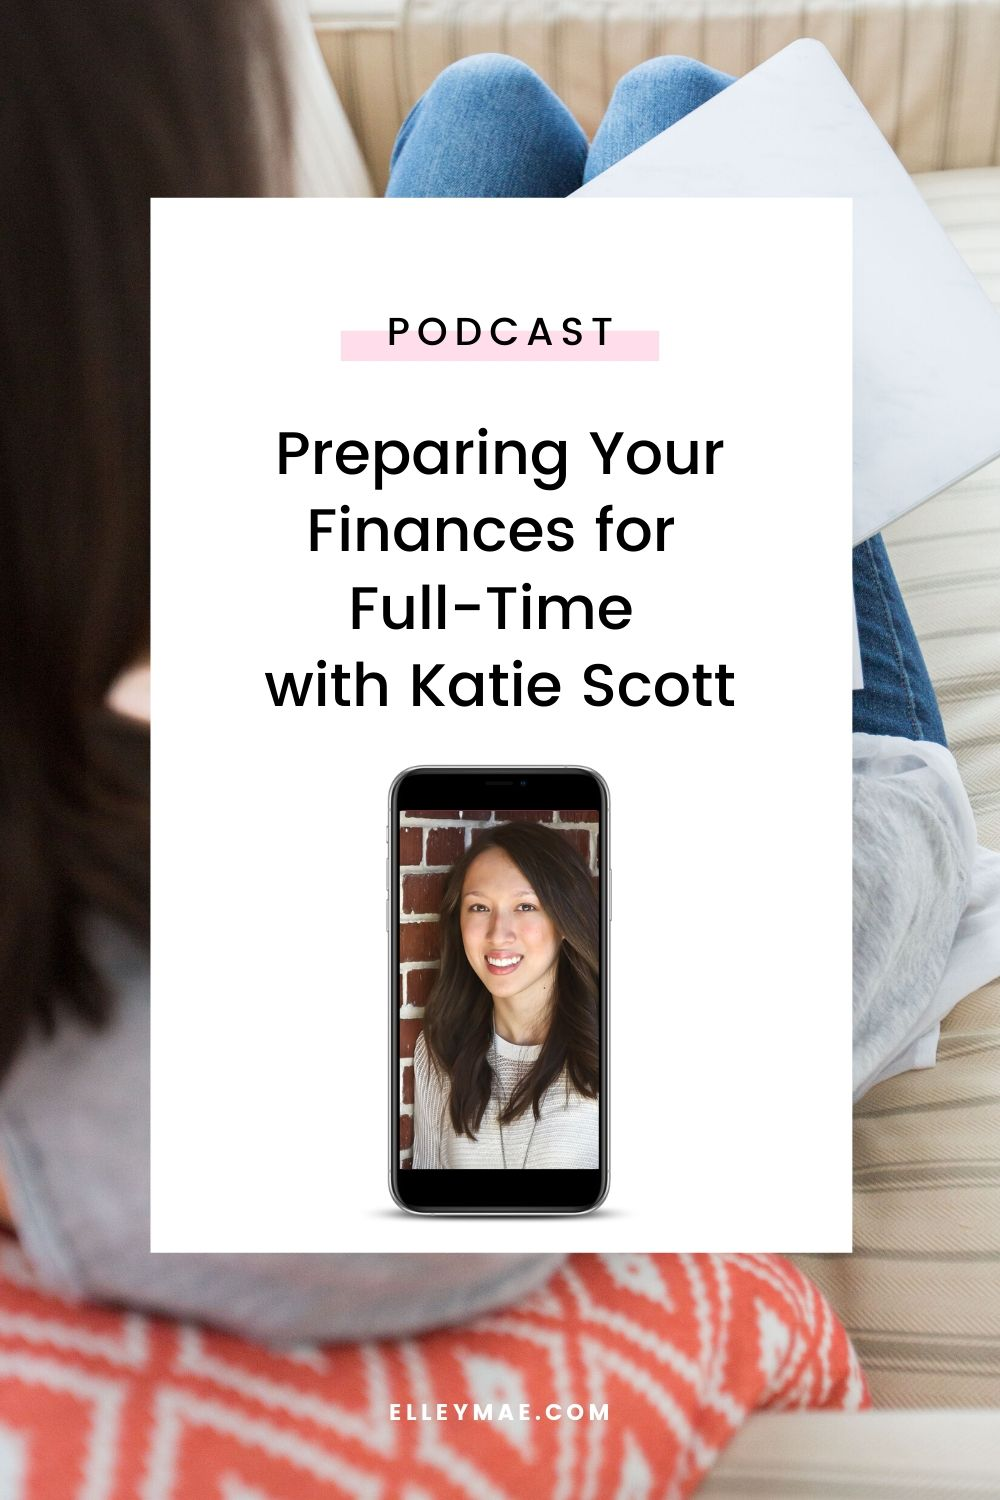 017. Preparing Your Finances for Full-Time with Katie Scott